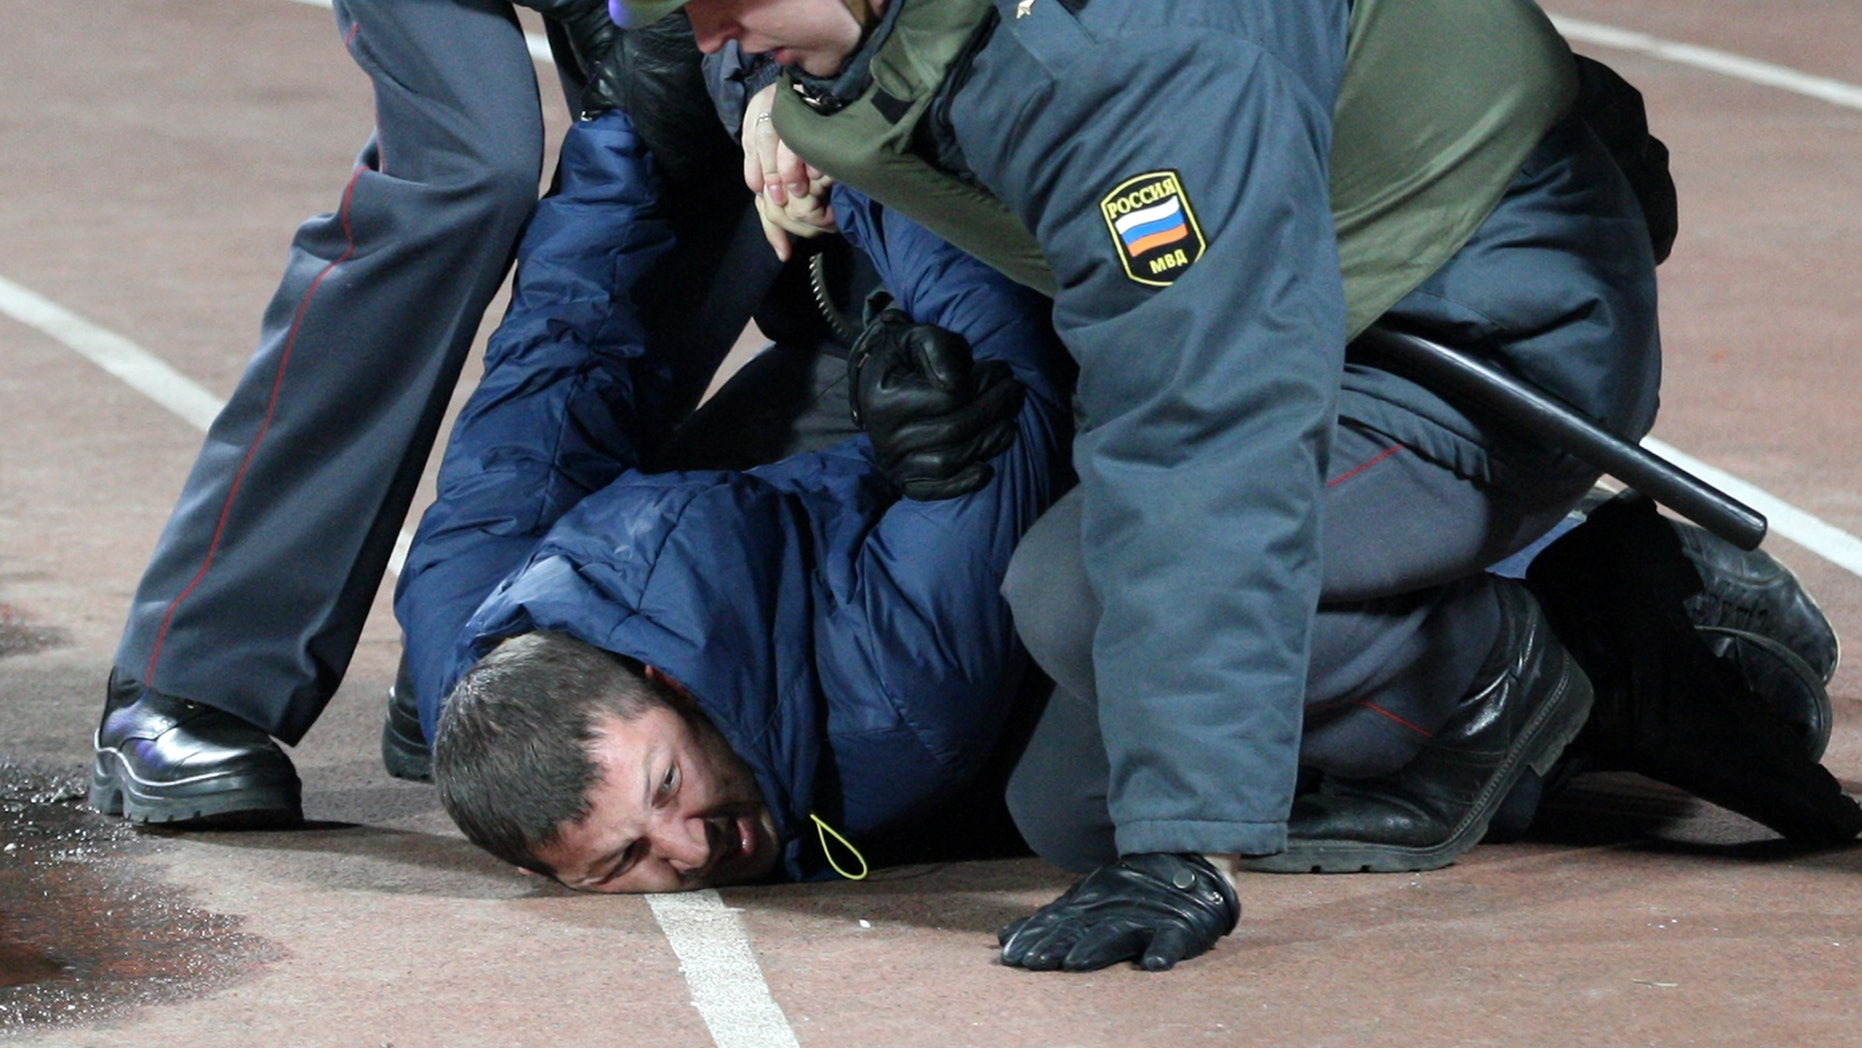 Police detain a soccer fan to stop clashes after a Russia Cup soccer match between Shinnik Yaroslavl and Spartak Moscow at a stadium in Yaroslavl, Russia, Wednesday, Oct. 30, 2013. Police used a water cannon to stop a fight between soccer fans during the match(AP Photo/Alexander Mysyakin)